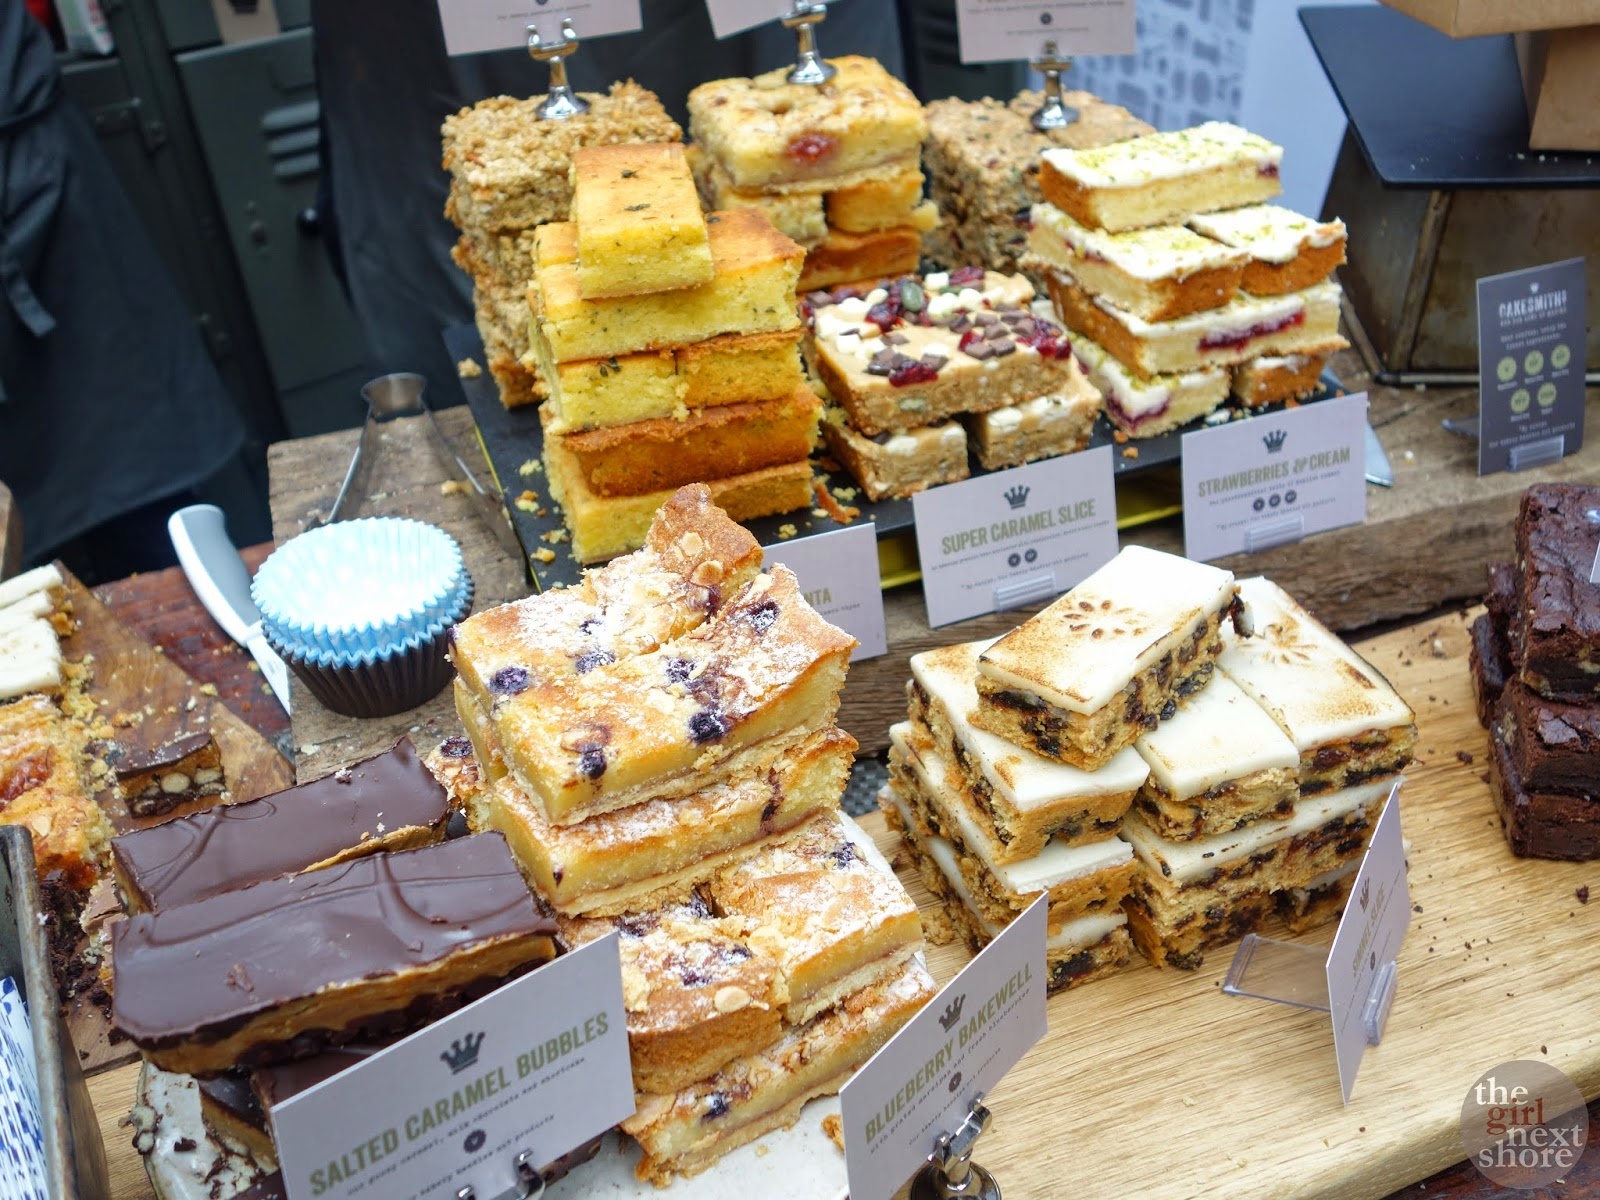 Cakesmiths at the London Coffee Festival